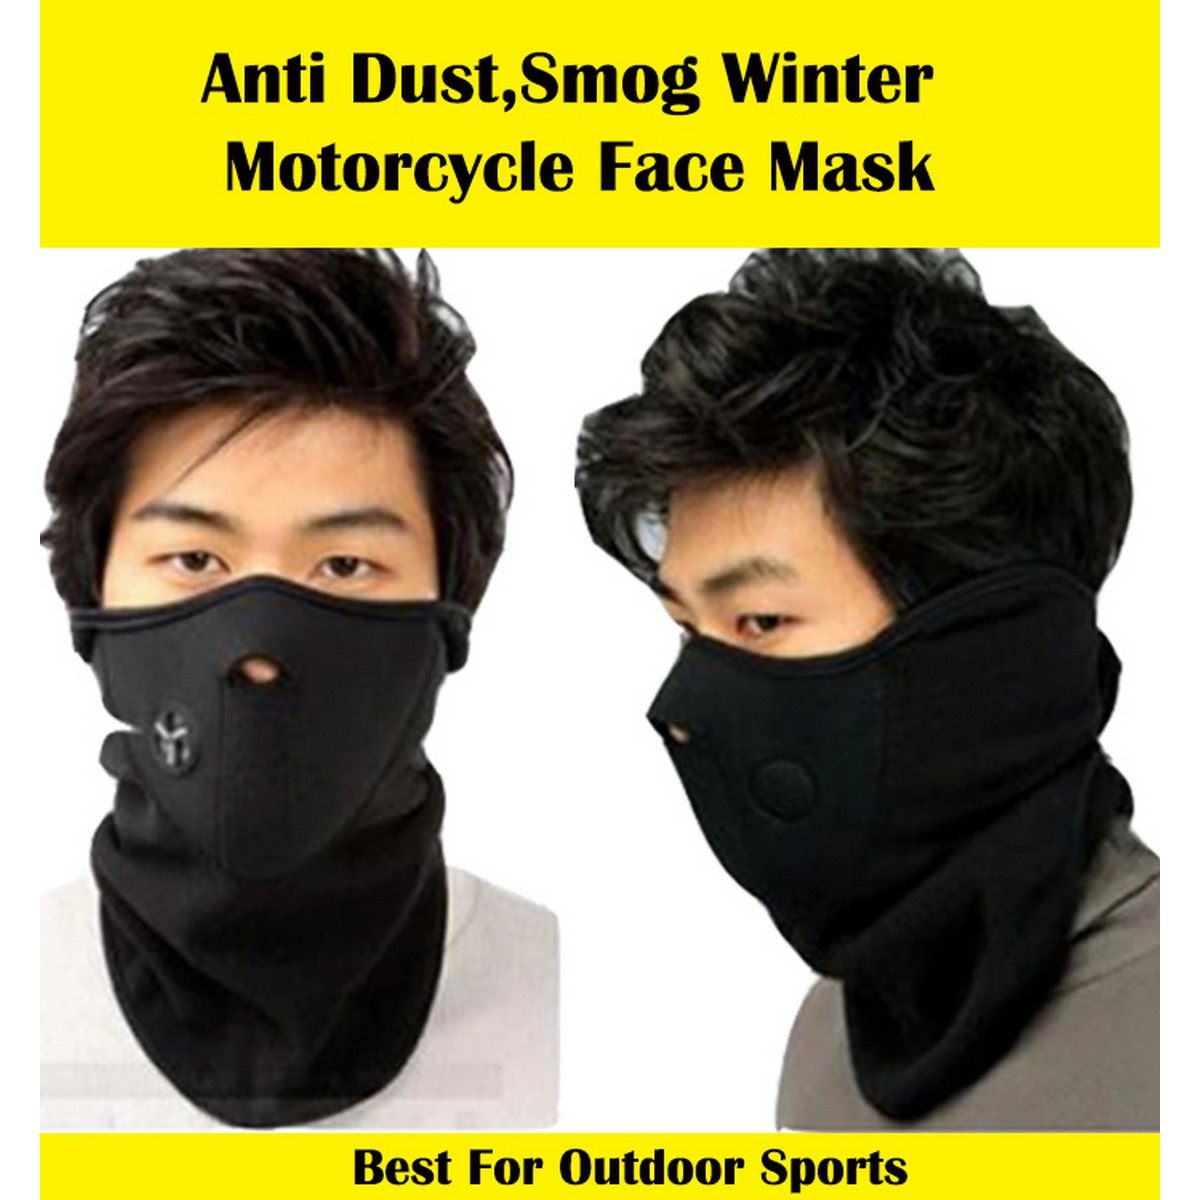 Motorcycle Winter Face Mask Thermal Neck Protection Guard  Warmer Unisex Face Cover for Bike ,Bicycle,Skiing,Running,Hiking,Mountain Climbing,Skateboard